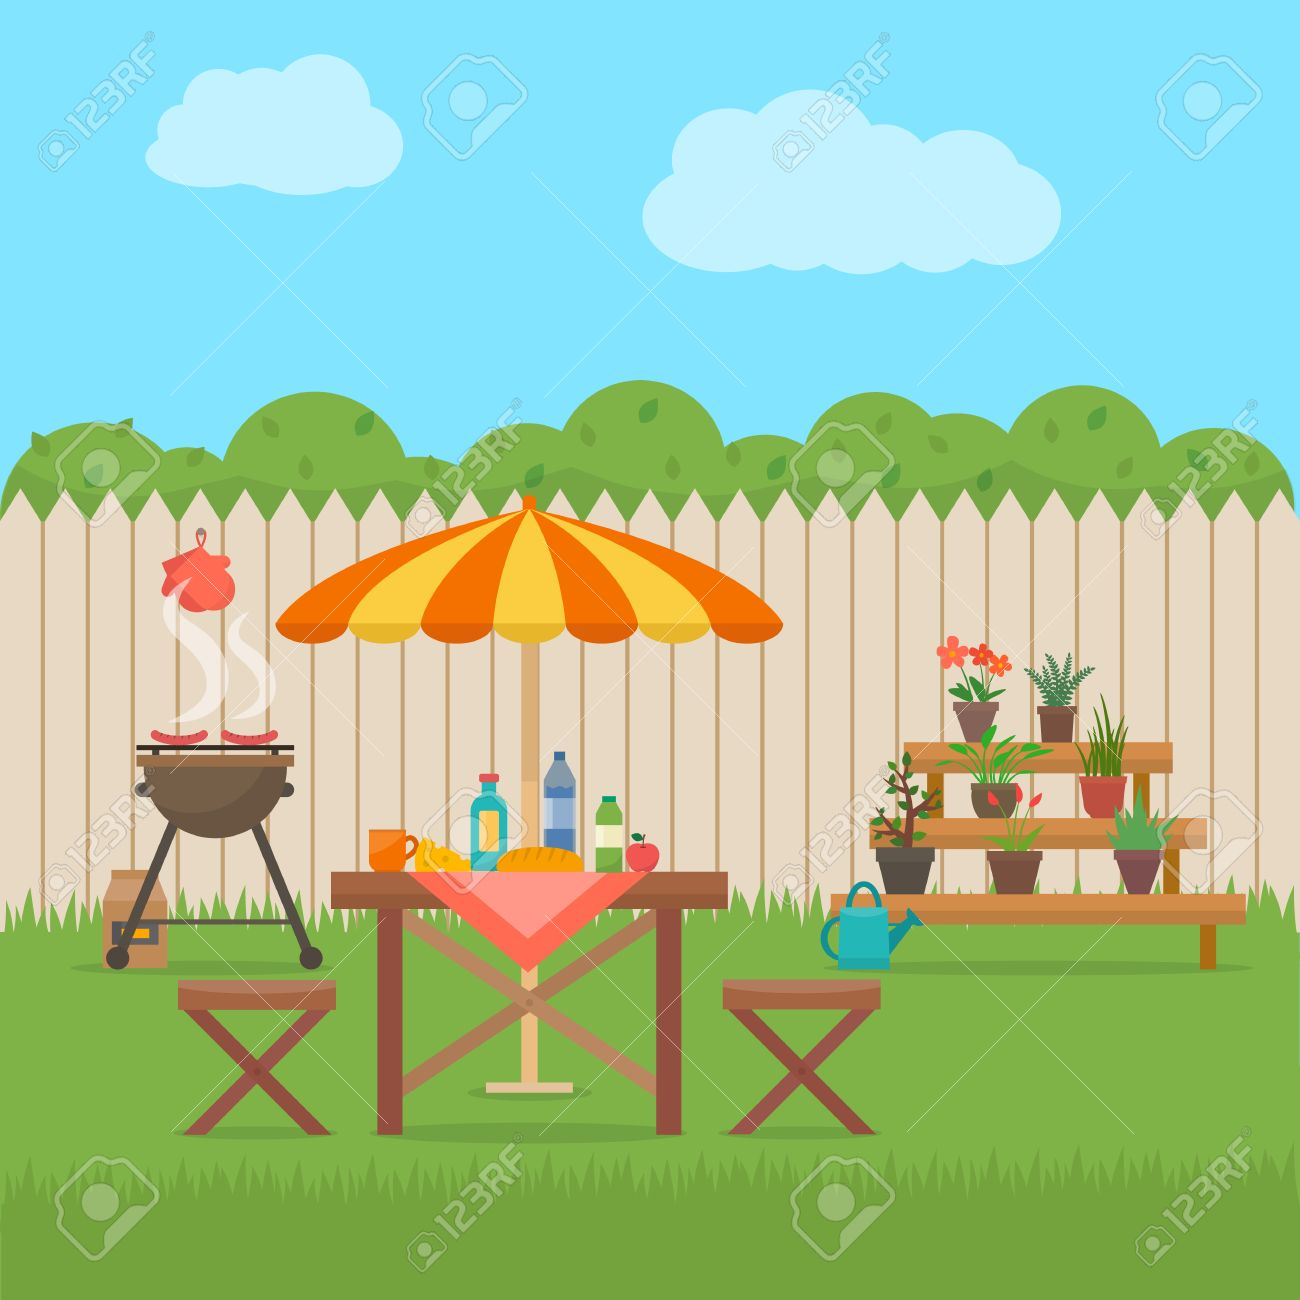 House backyard with grill. Outdoor picnic. Barbecue in patio. Flat style vector illustration. - 52617178